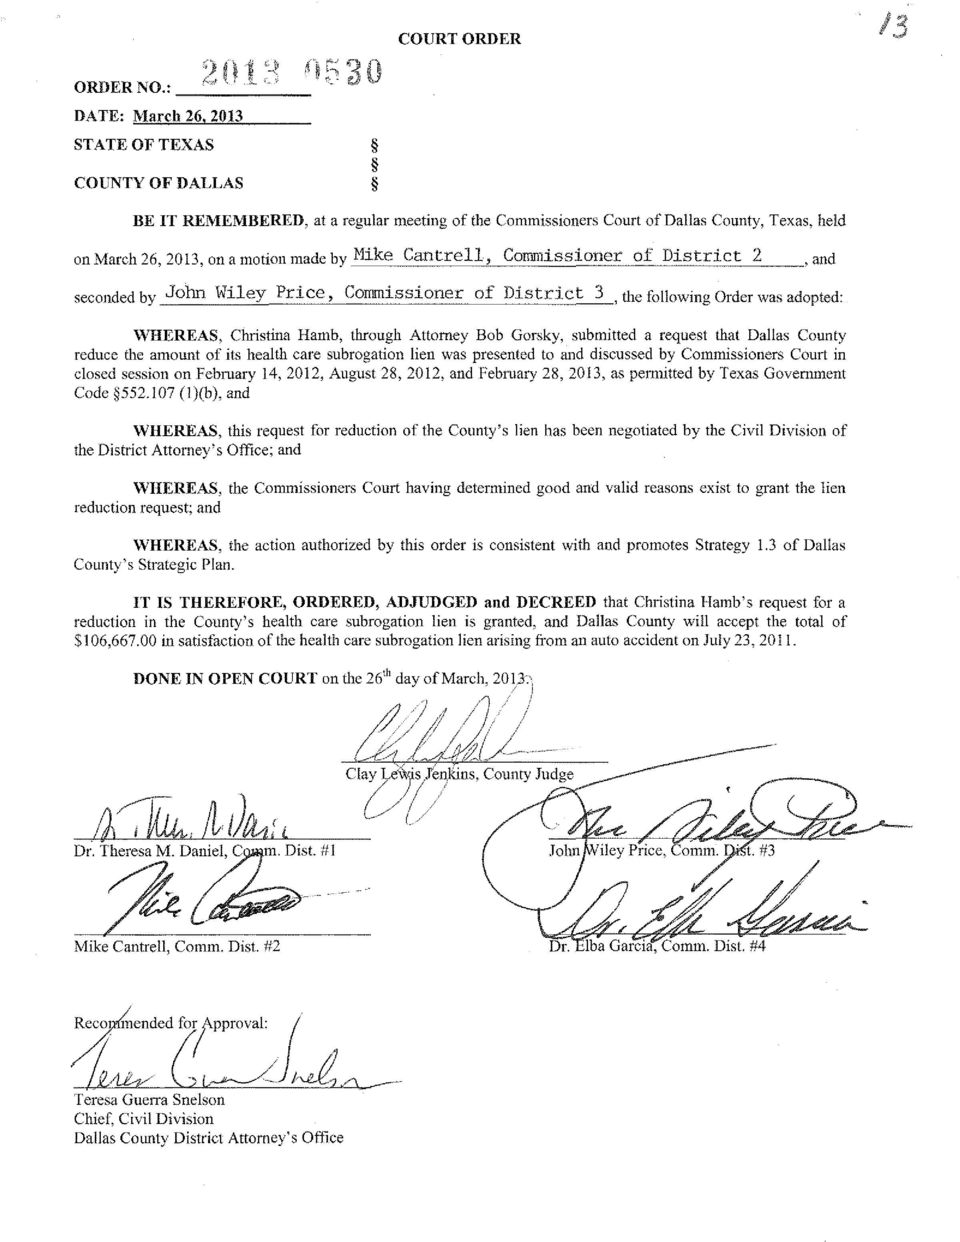 District 2, and seconded by John Wiley Price, Commissioner of District 3,the following Order was adopted: WHEREAS, Christina Hamb, through Attorney Bob Gorsky, submitted a request that Dallas County